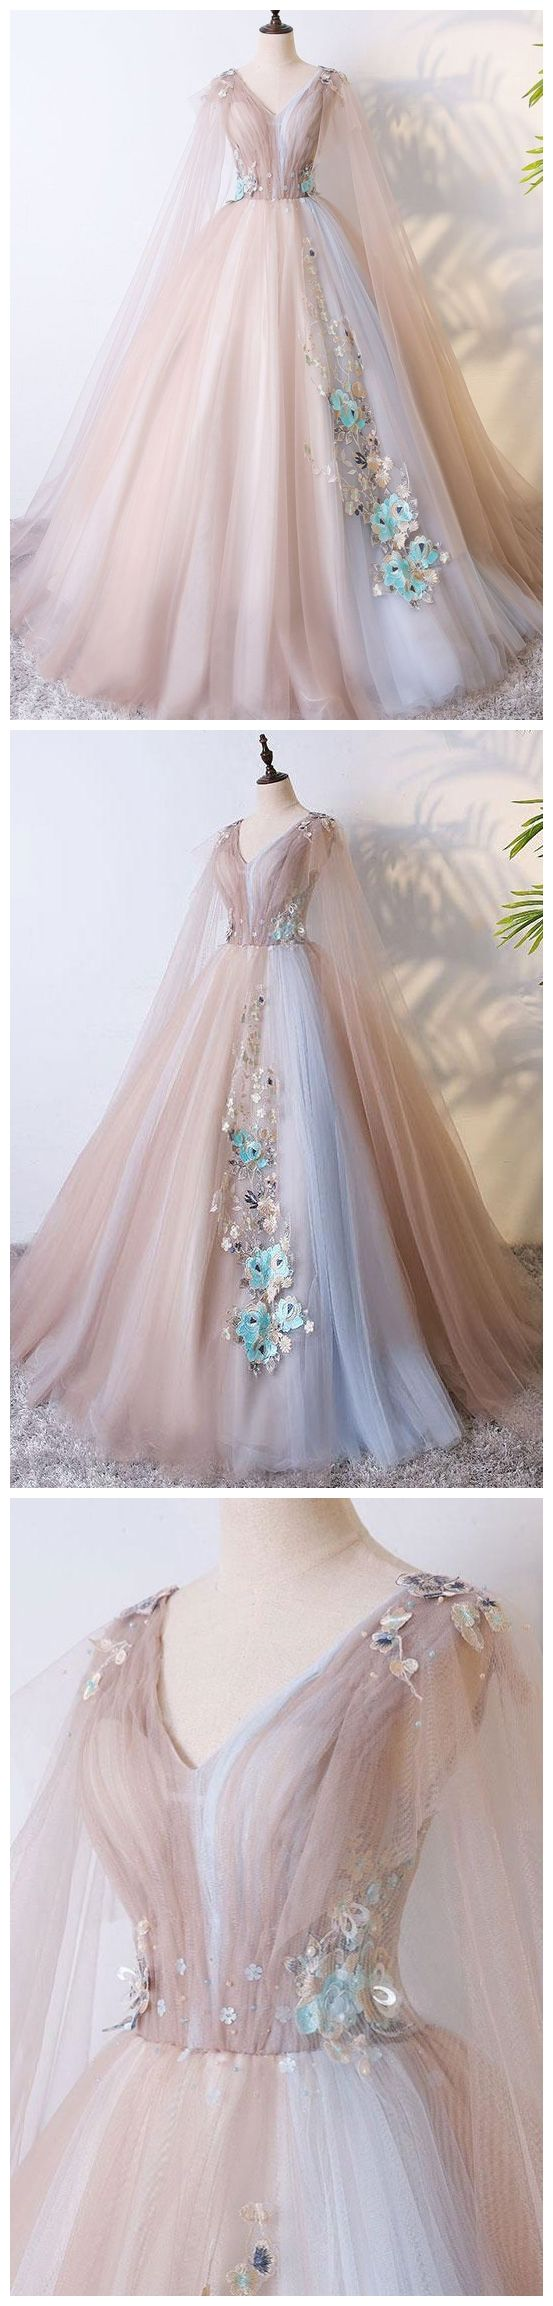 eb129b06f48 A Line Tulle Khaki Embroidery Appliqued Prom Dresses Cape Sleeve Evening  Ball Gowns  eveningdresses  eveninggowns  formaleveningdresses  promdresses    ...